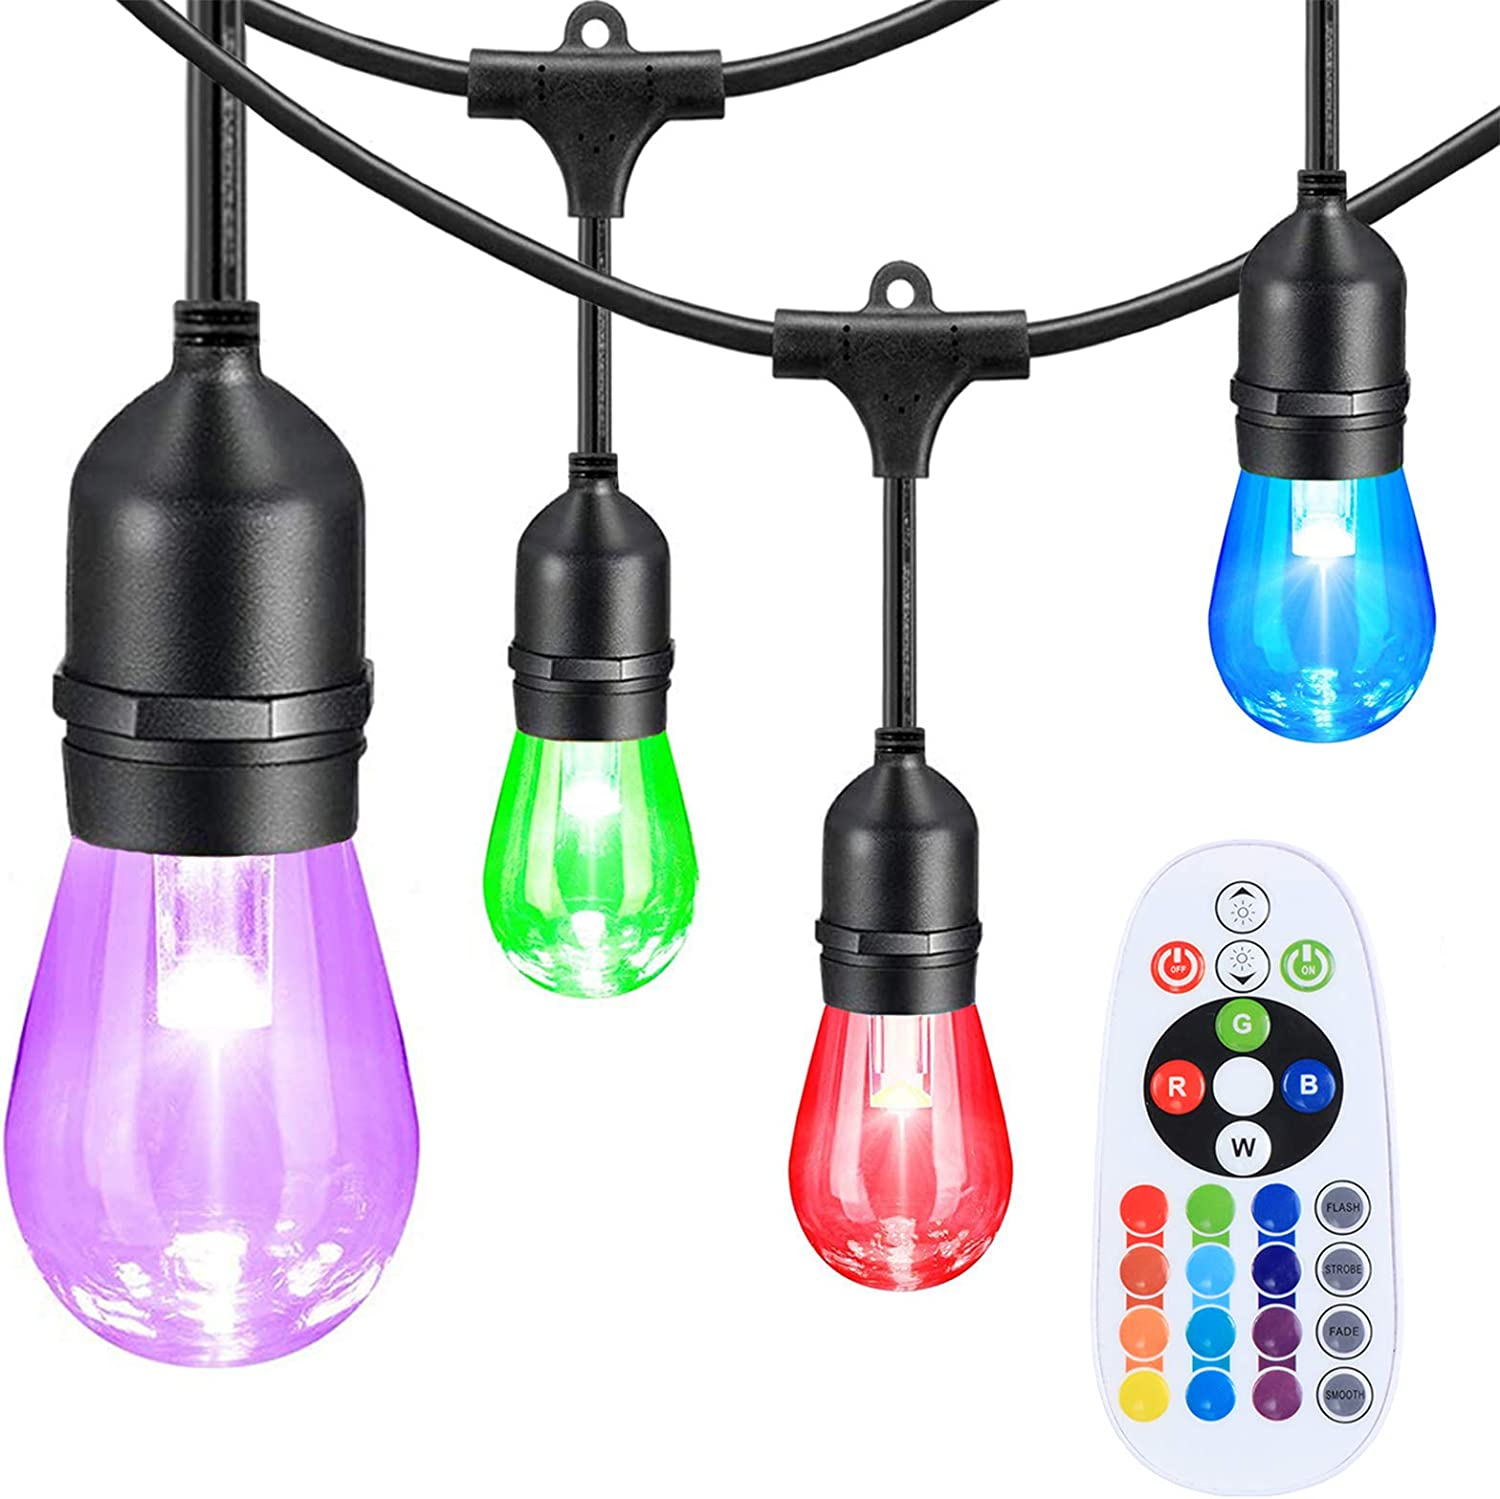 Afirst Color Changing Outdoor String Lights,Dimmable,12 RGB LED Bulbs,Commercial Grade Waterproof RGB String Lights for Patio Backyard Party Birthday Wedding Christmas,24 Feet